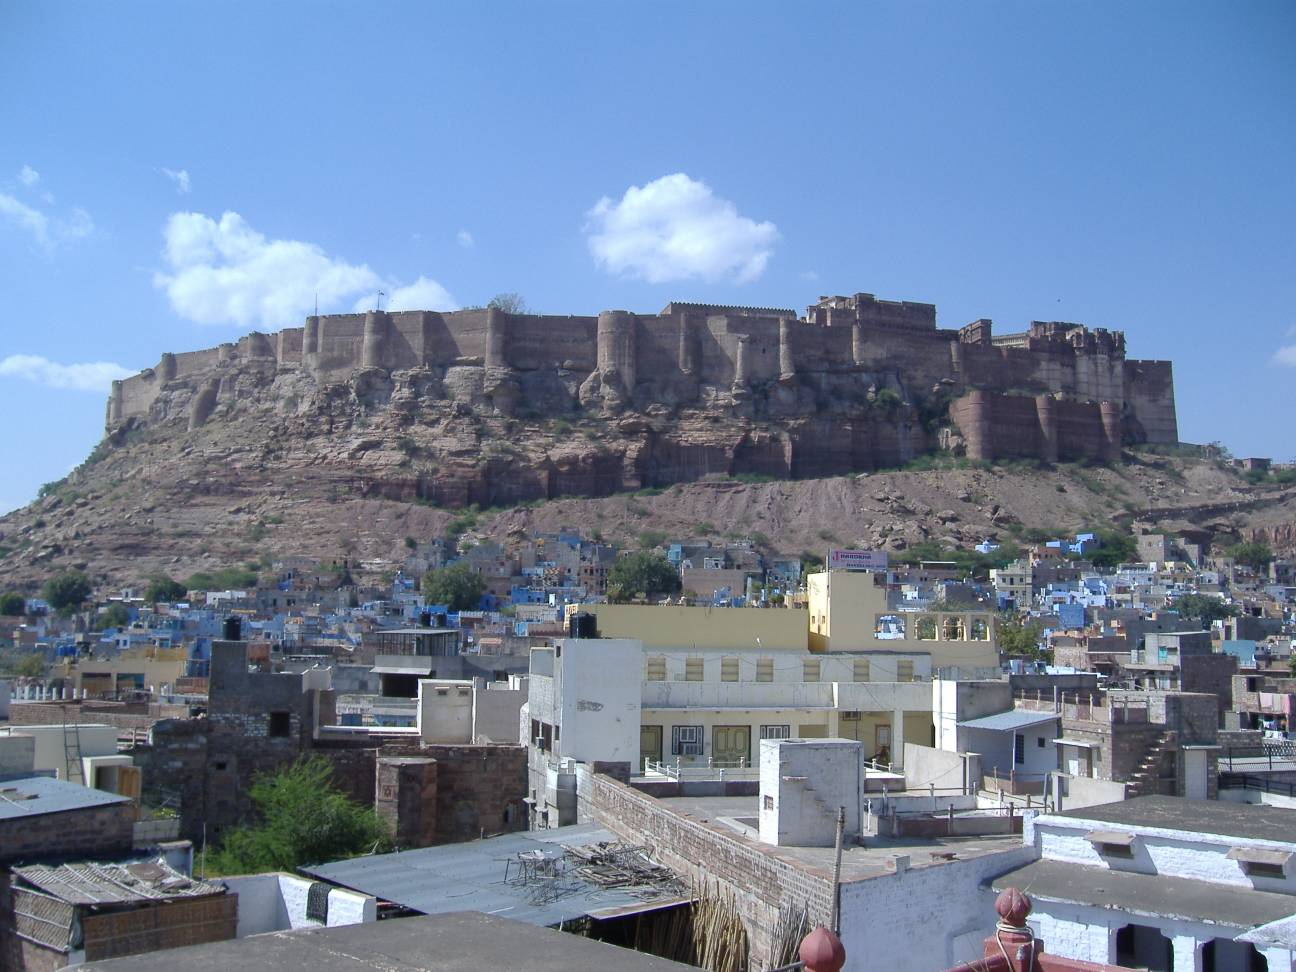 View of Mehrangarh fort in Jodhpur